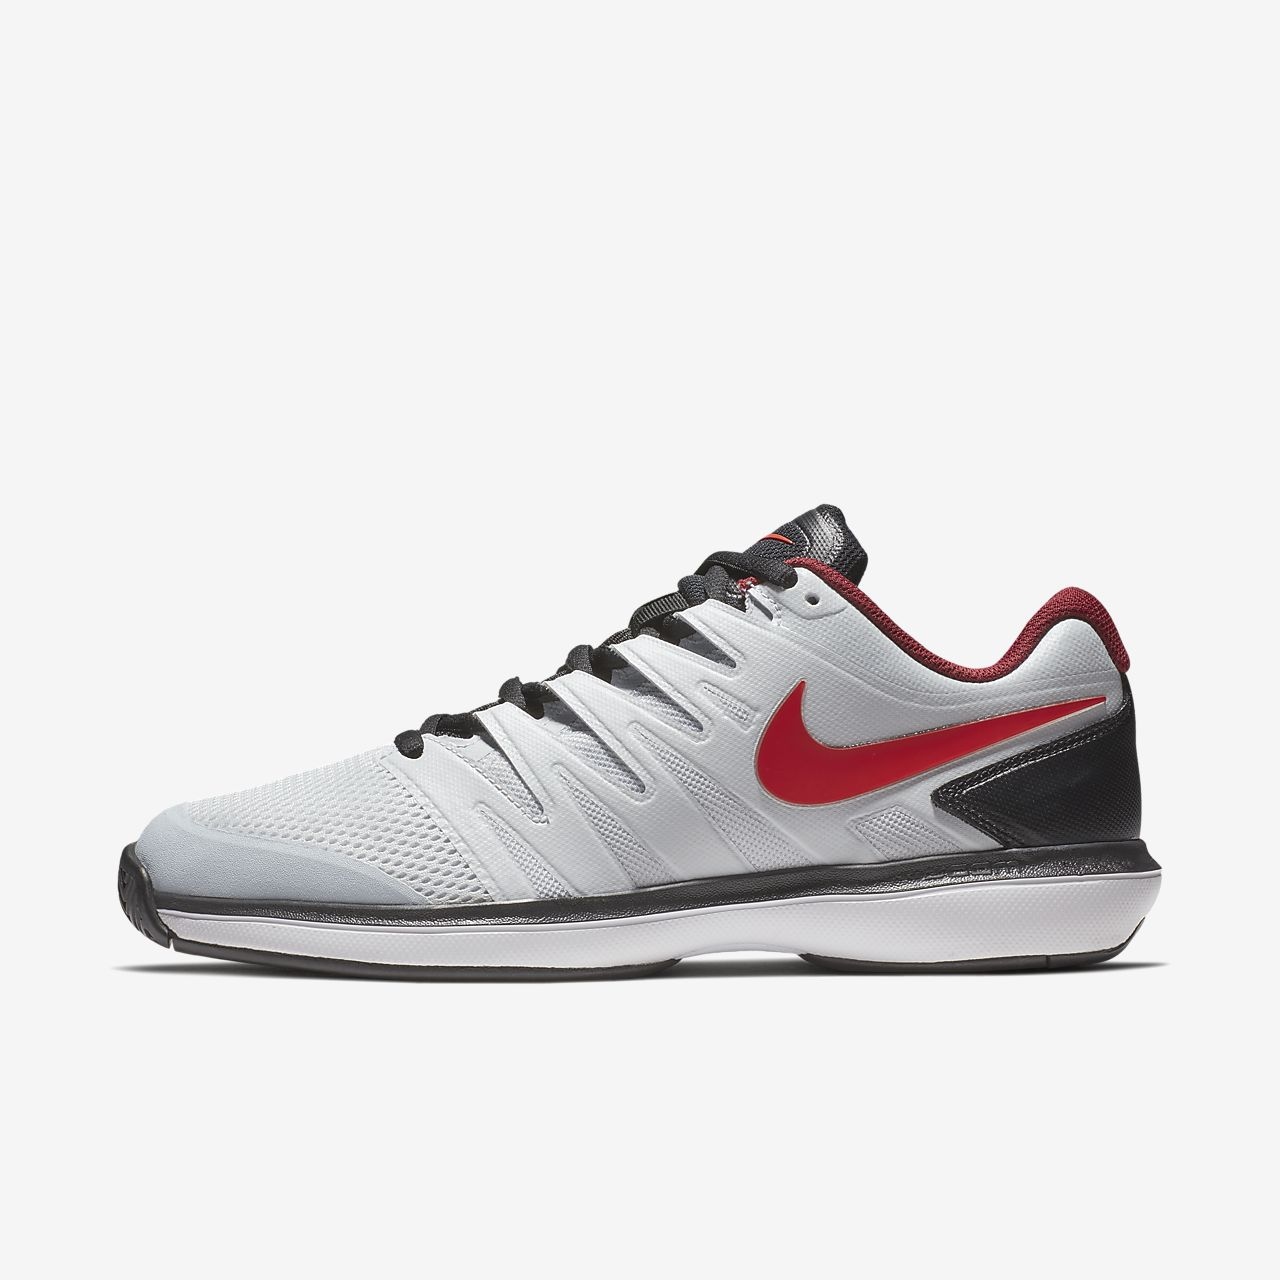 best service 8fb52 6dc31 Nike Tennis Gear South Africa